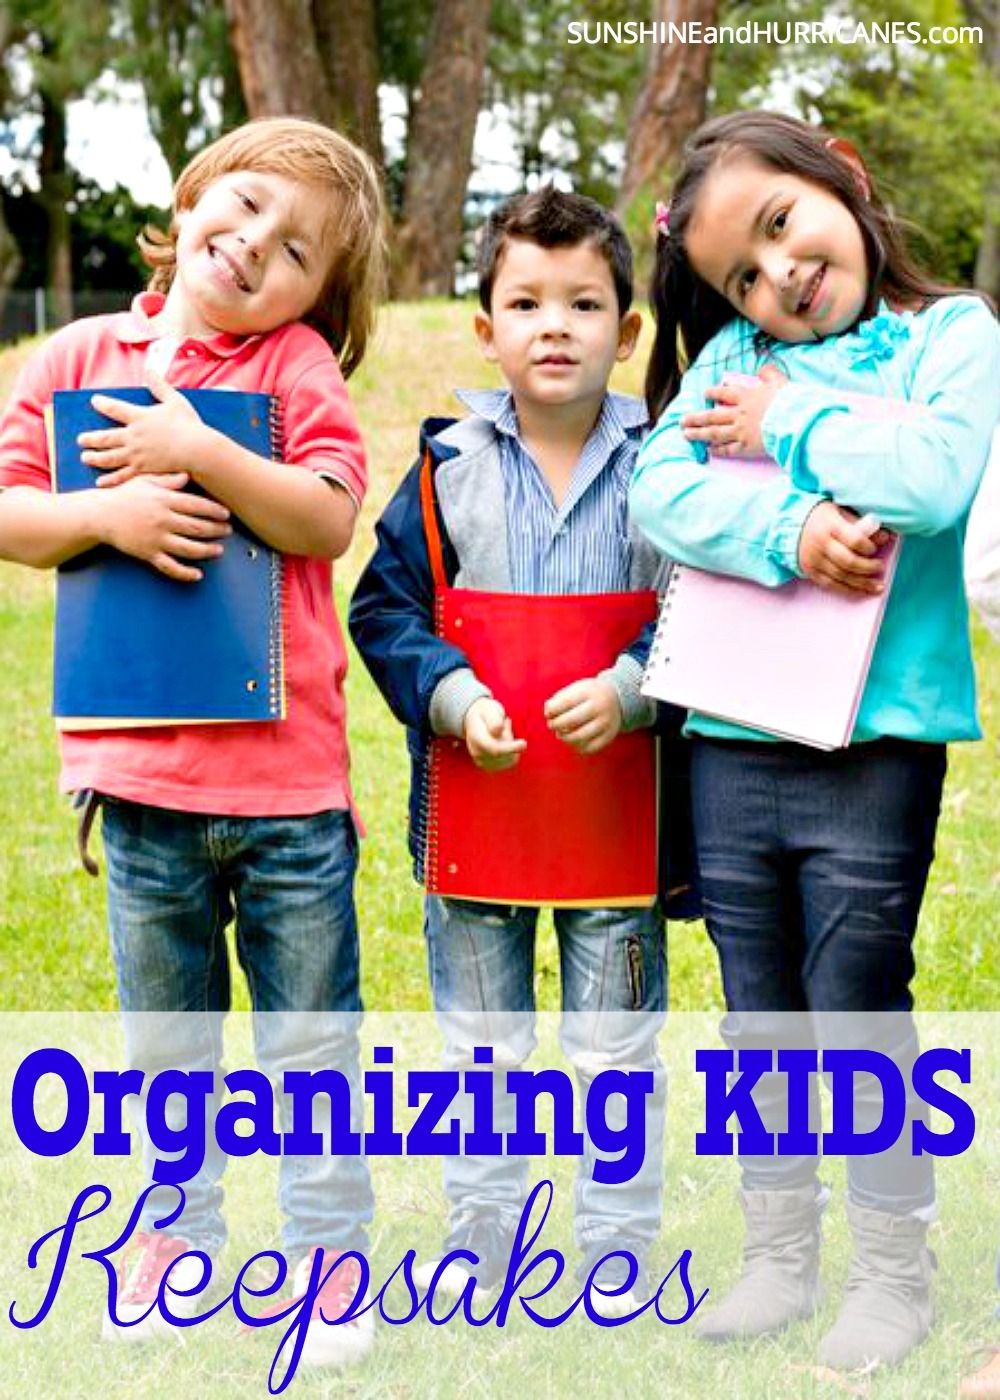 Drowning in all your child's artwork, school paper and mementos but can't stand the idea of throwing any of it away? Today's technology has a solution for you. We'll show you how to preserve all those memories while also preserving your sanity and the order in your home. Organizing Kids Keepsakes. SunshineandHurricanes.com